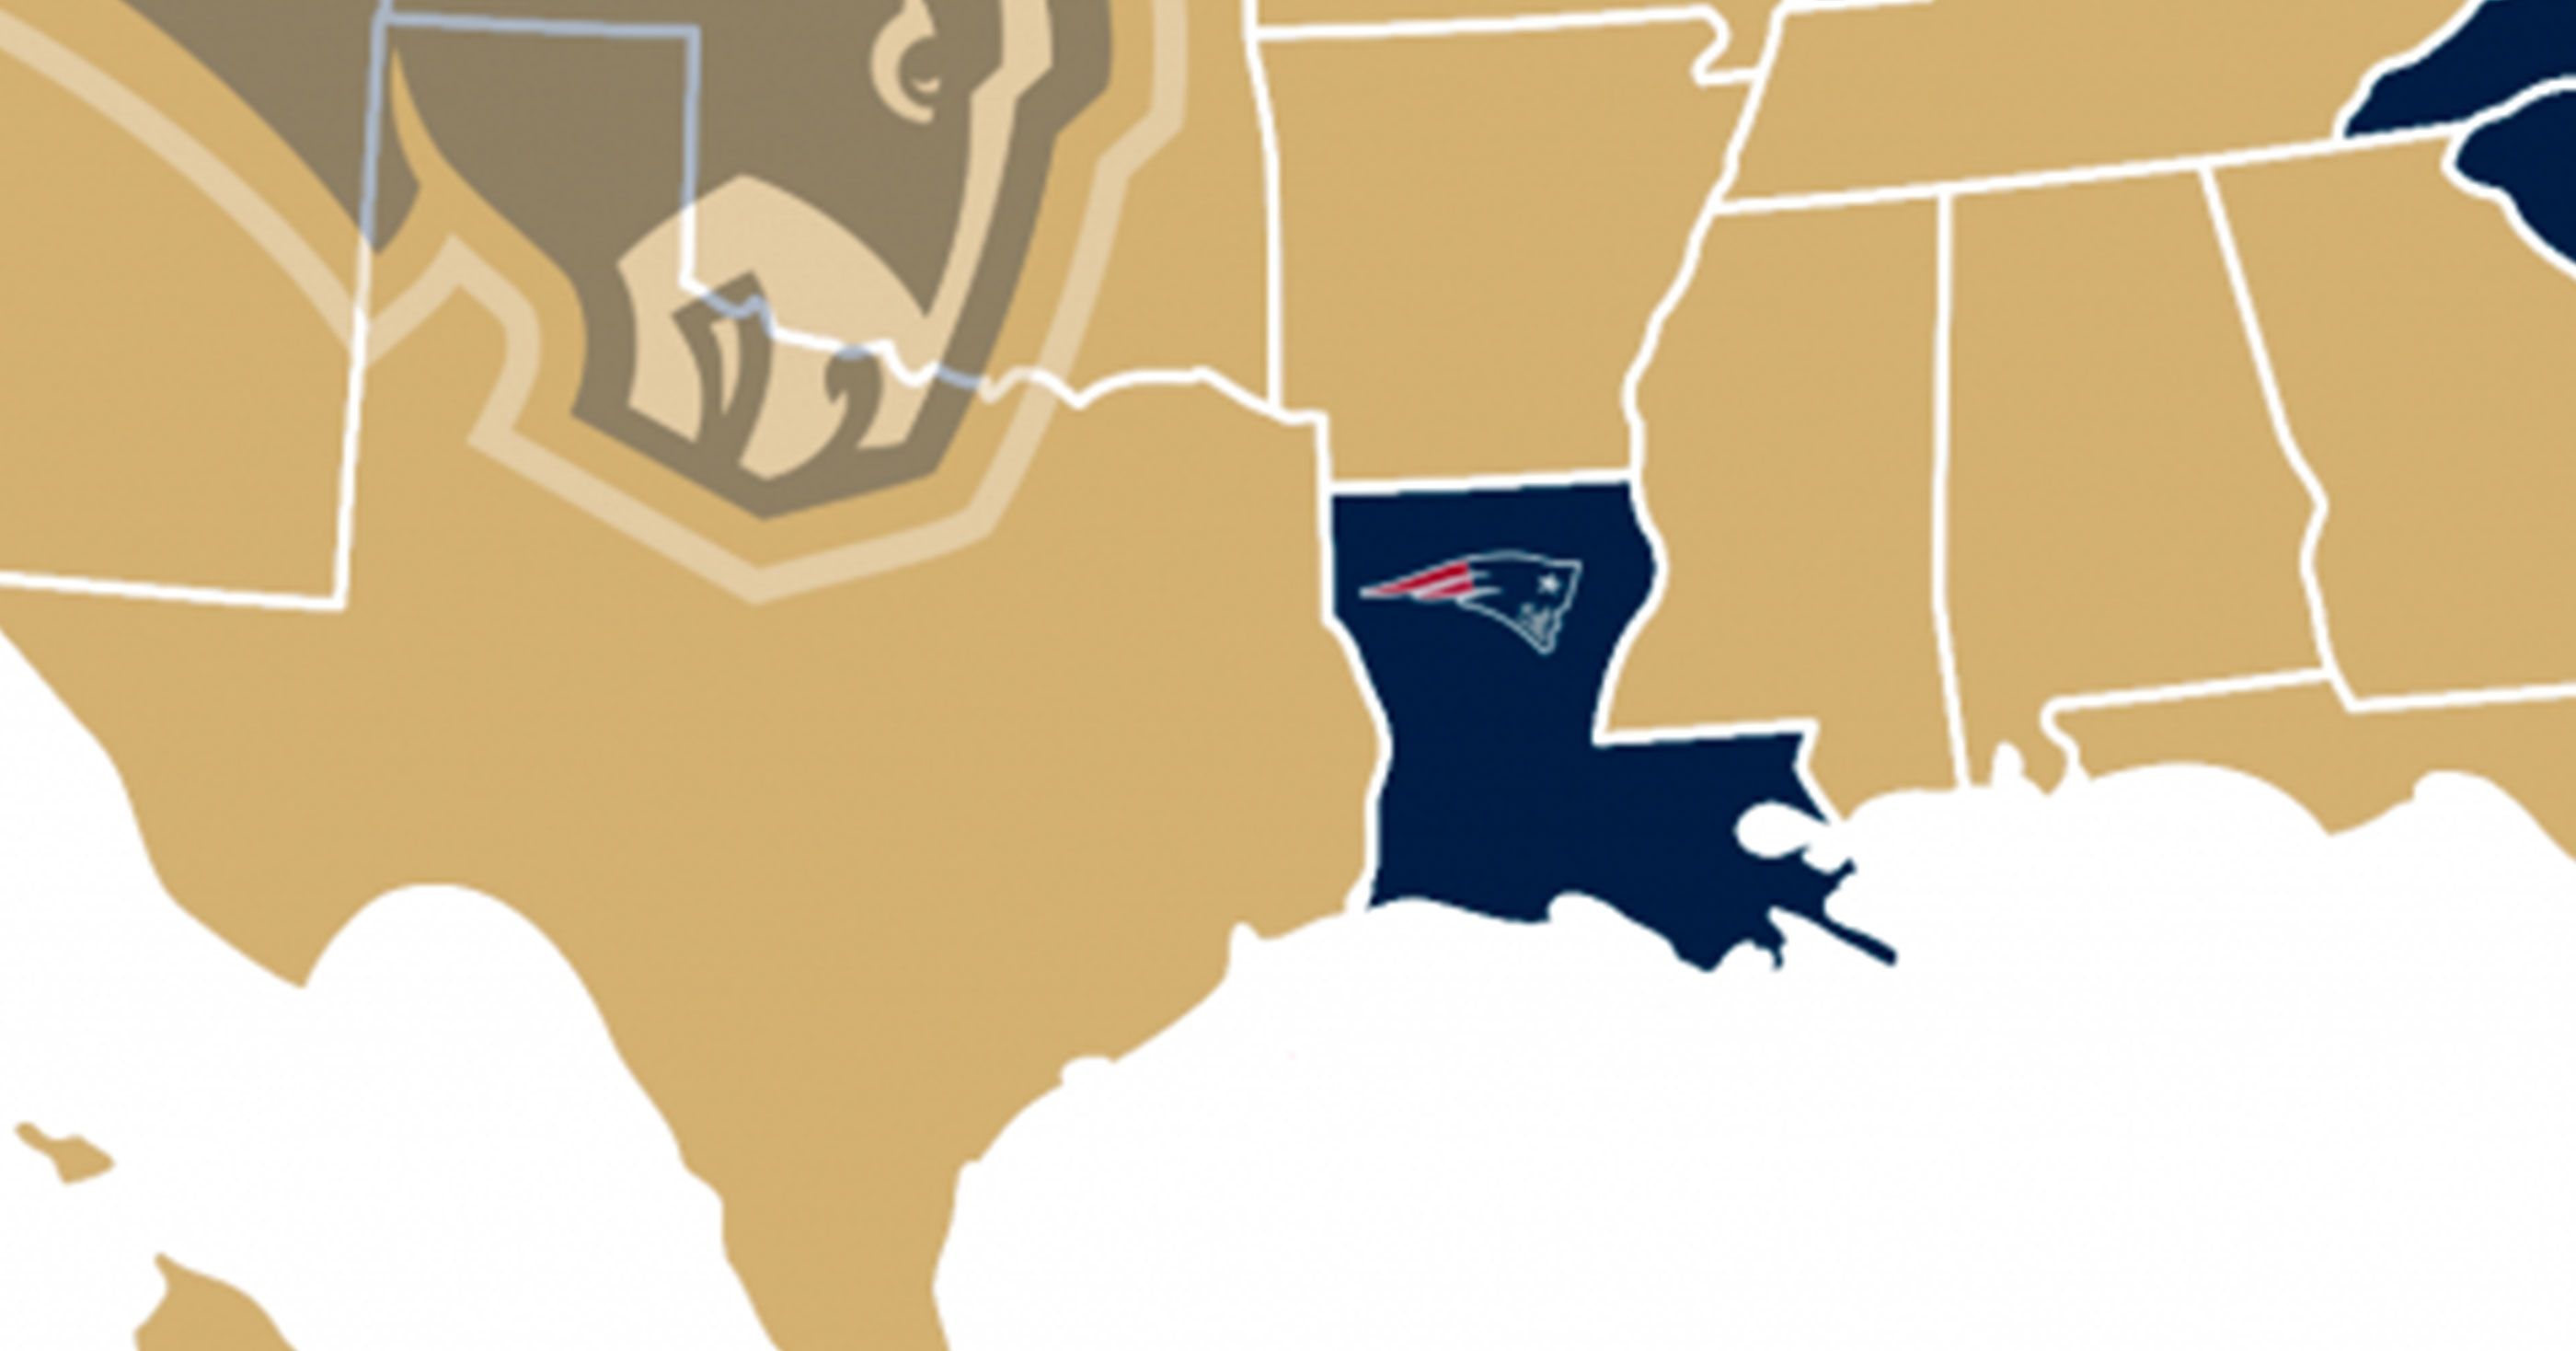 Map Shows Which Team Each State Is Rooting For In Super Bowl throughout Nfl Super Bowl Map